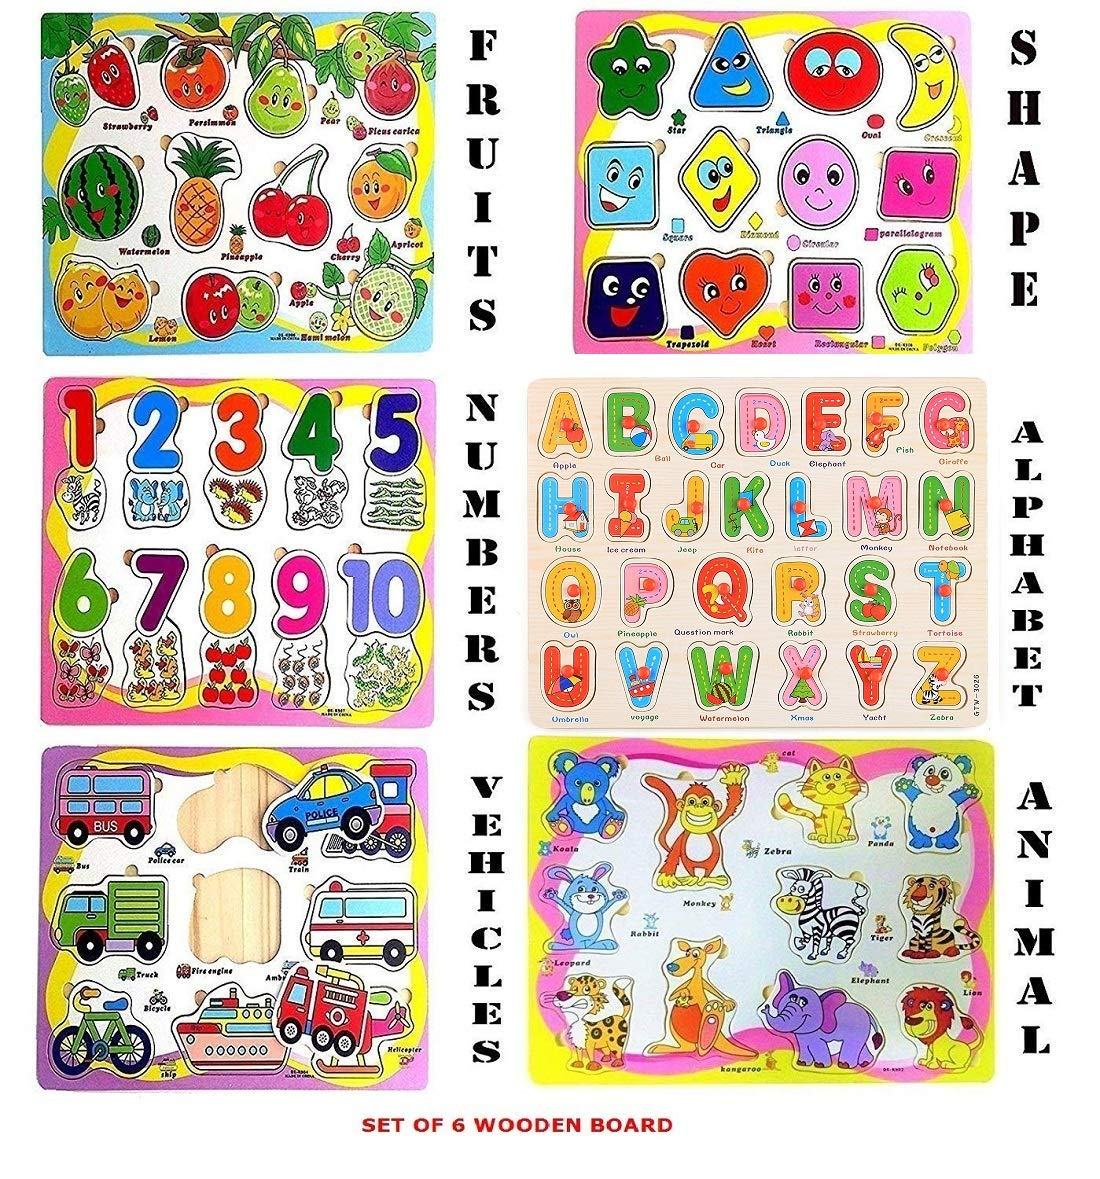 Funblast (Set Of 6 Puzzle Board) Wooden Colorful Learning